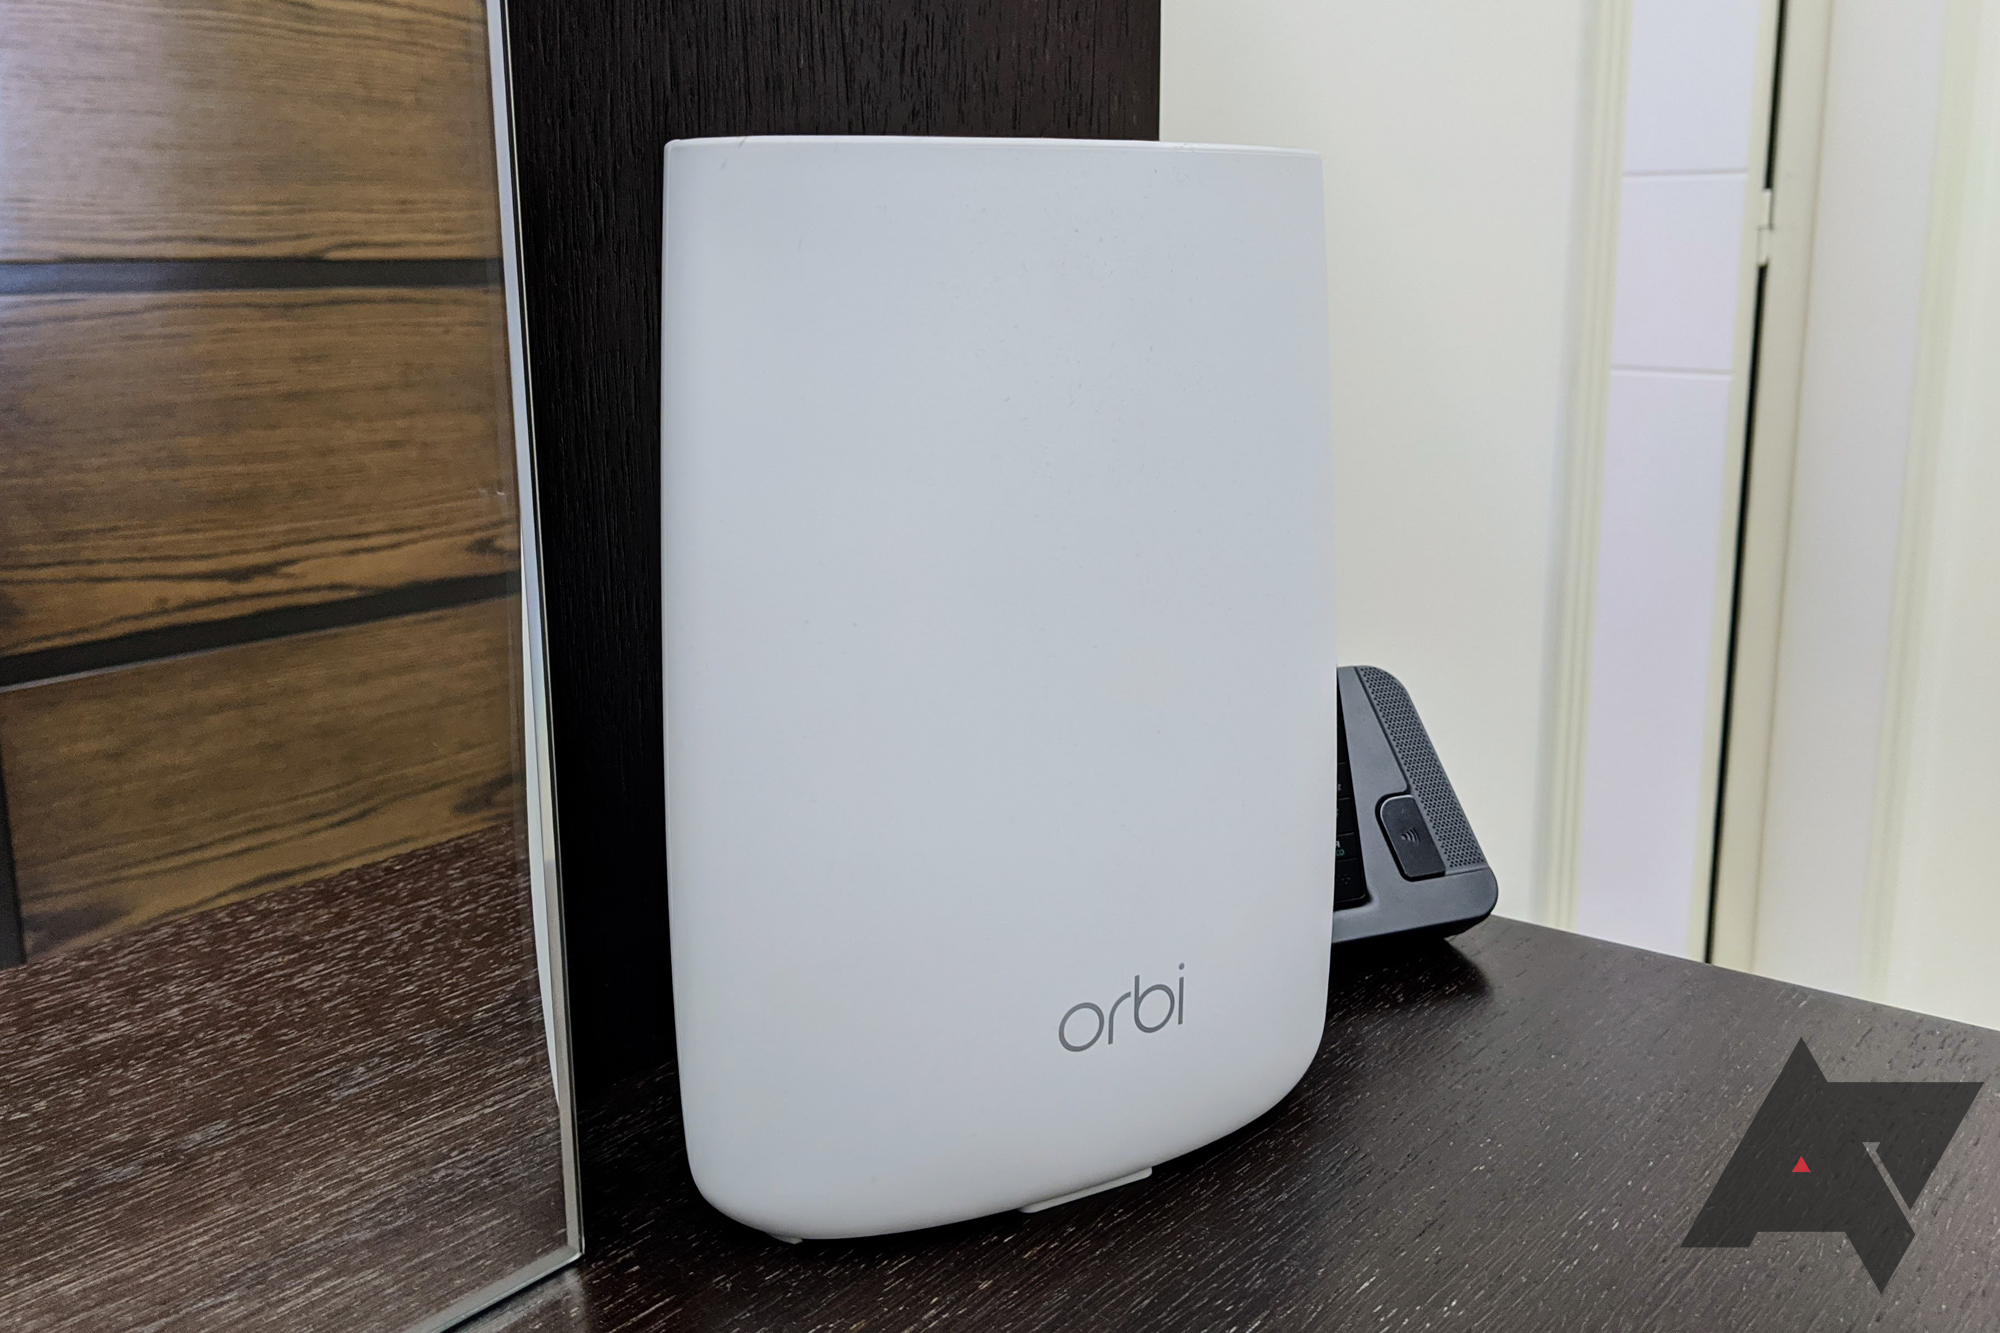 After using a Netgear Orbi mesh router for a year, I can wholeheartedly recommend it